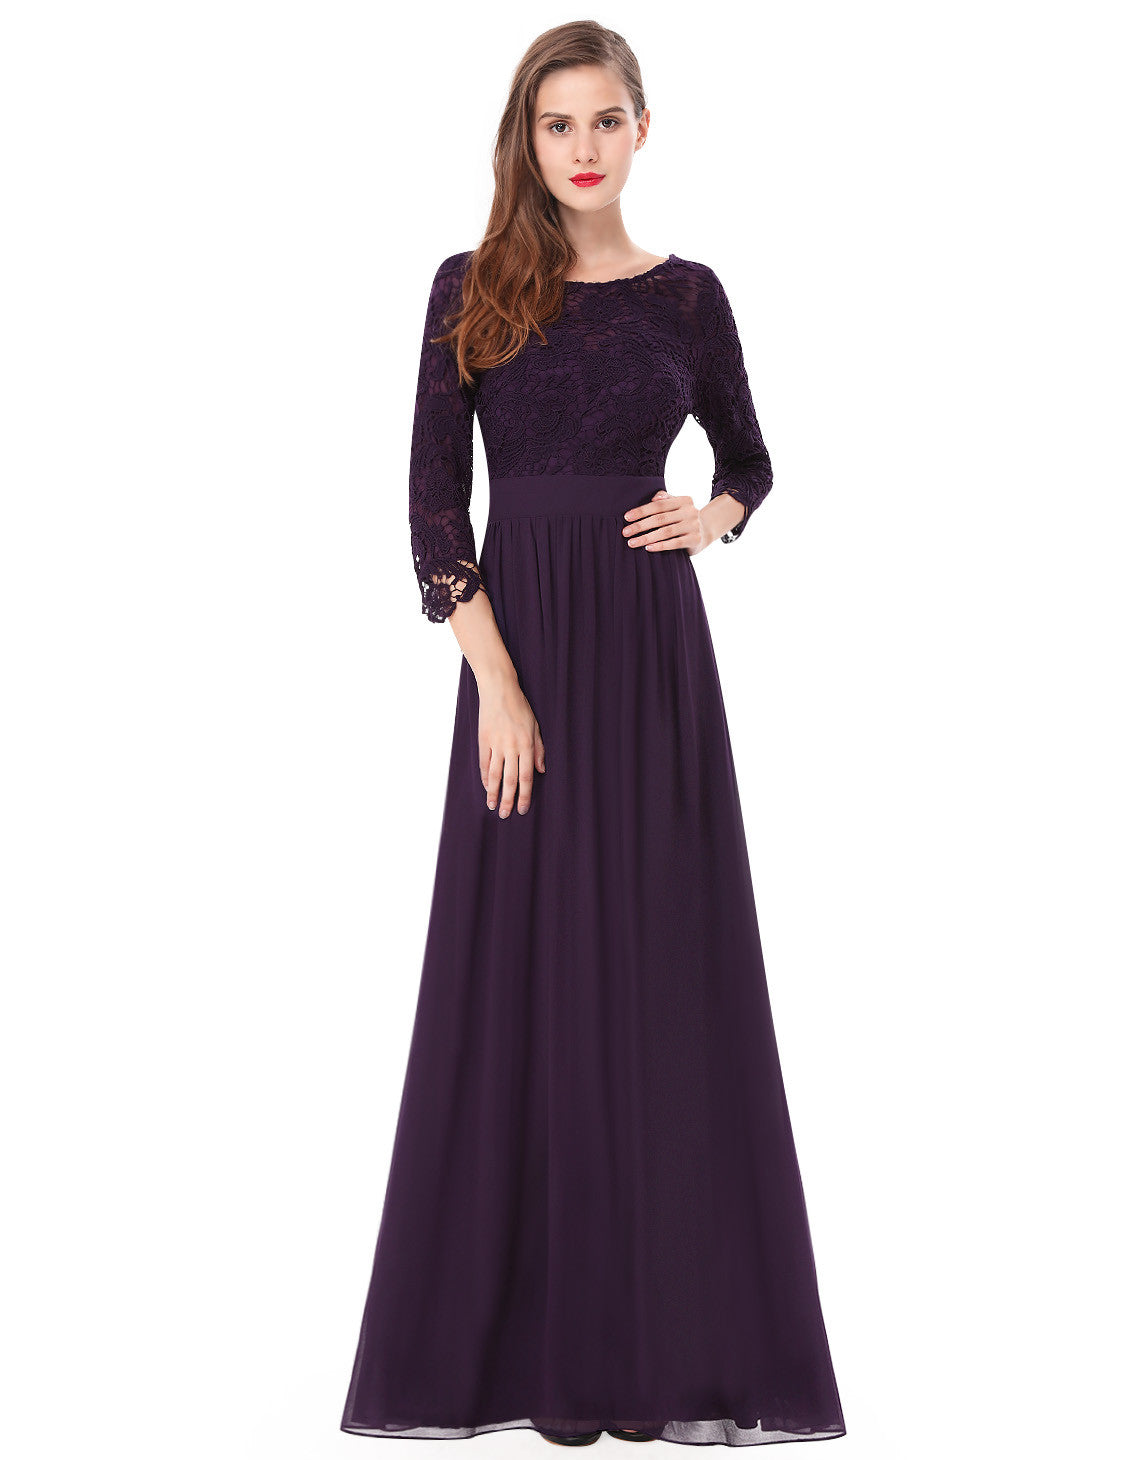 Purple 3/4 Sleeve Dress